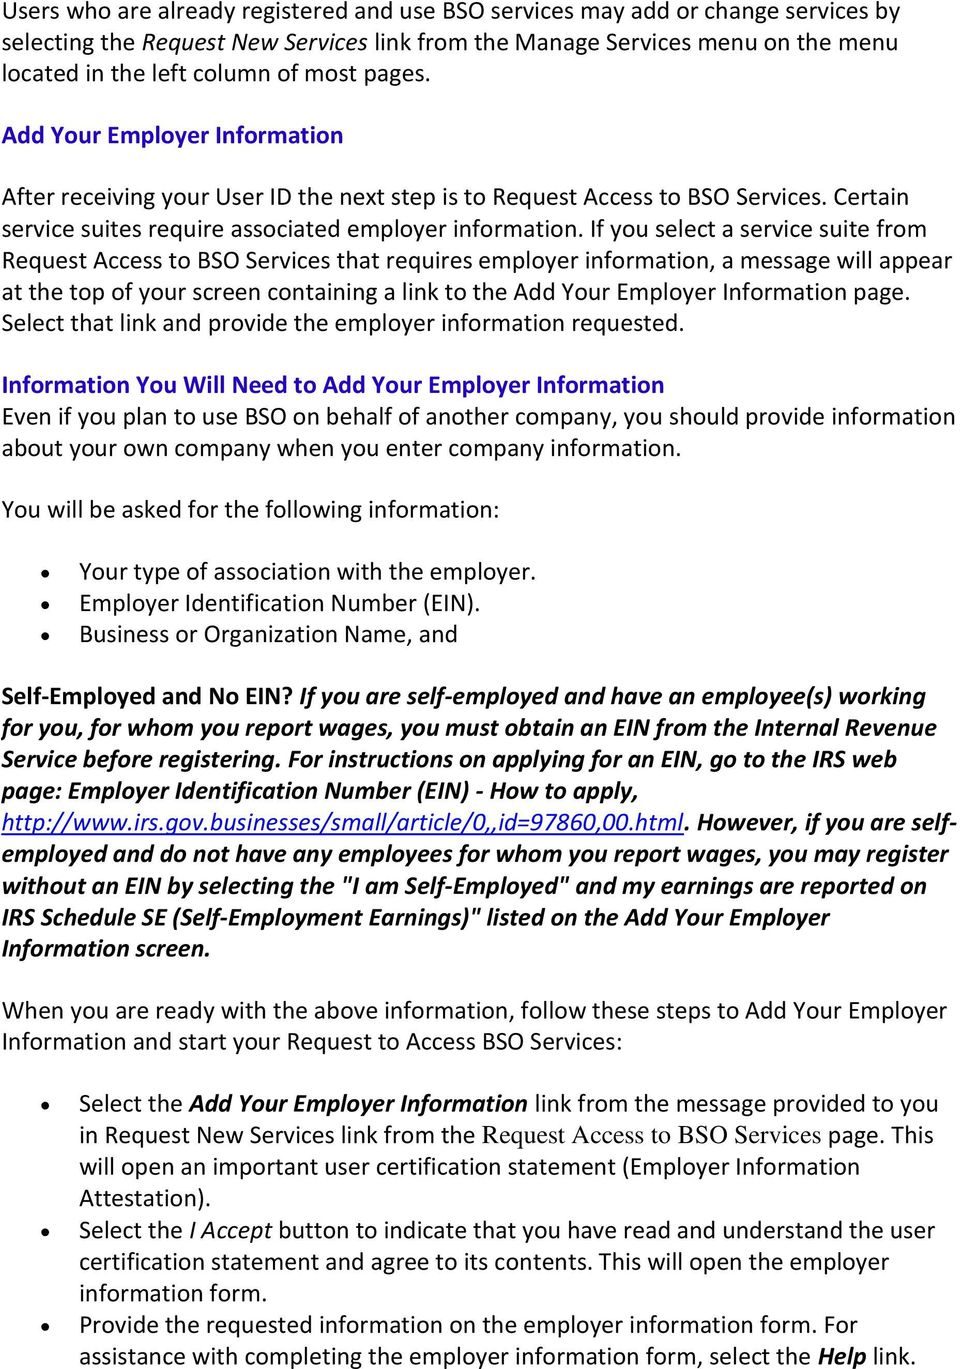 If you select a service suite from Request Access to BSO Services that requires employer information, a message will appear at the top of your screen containing a link to the Add Your Employer